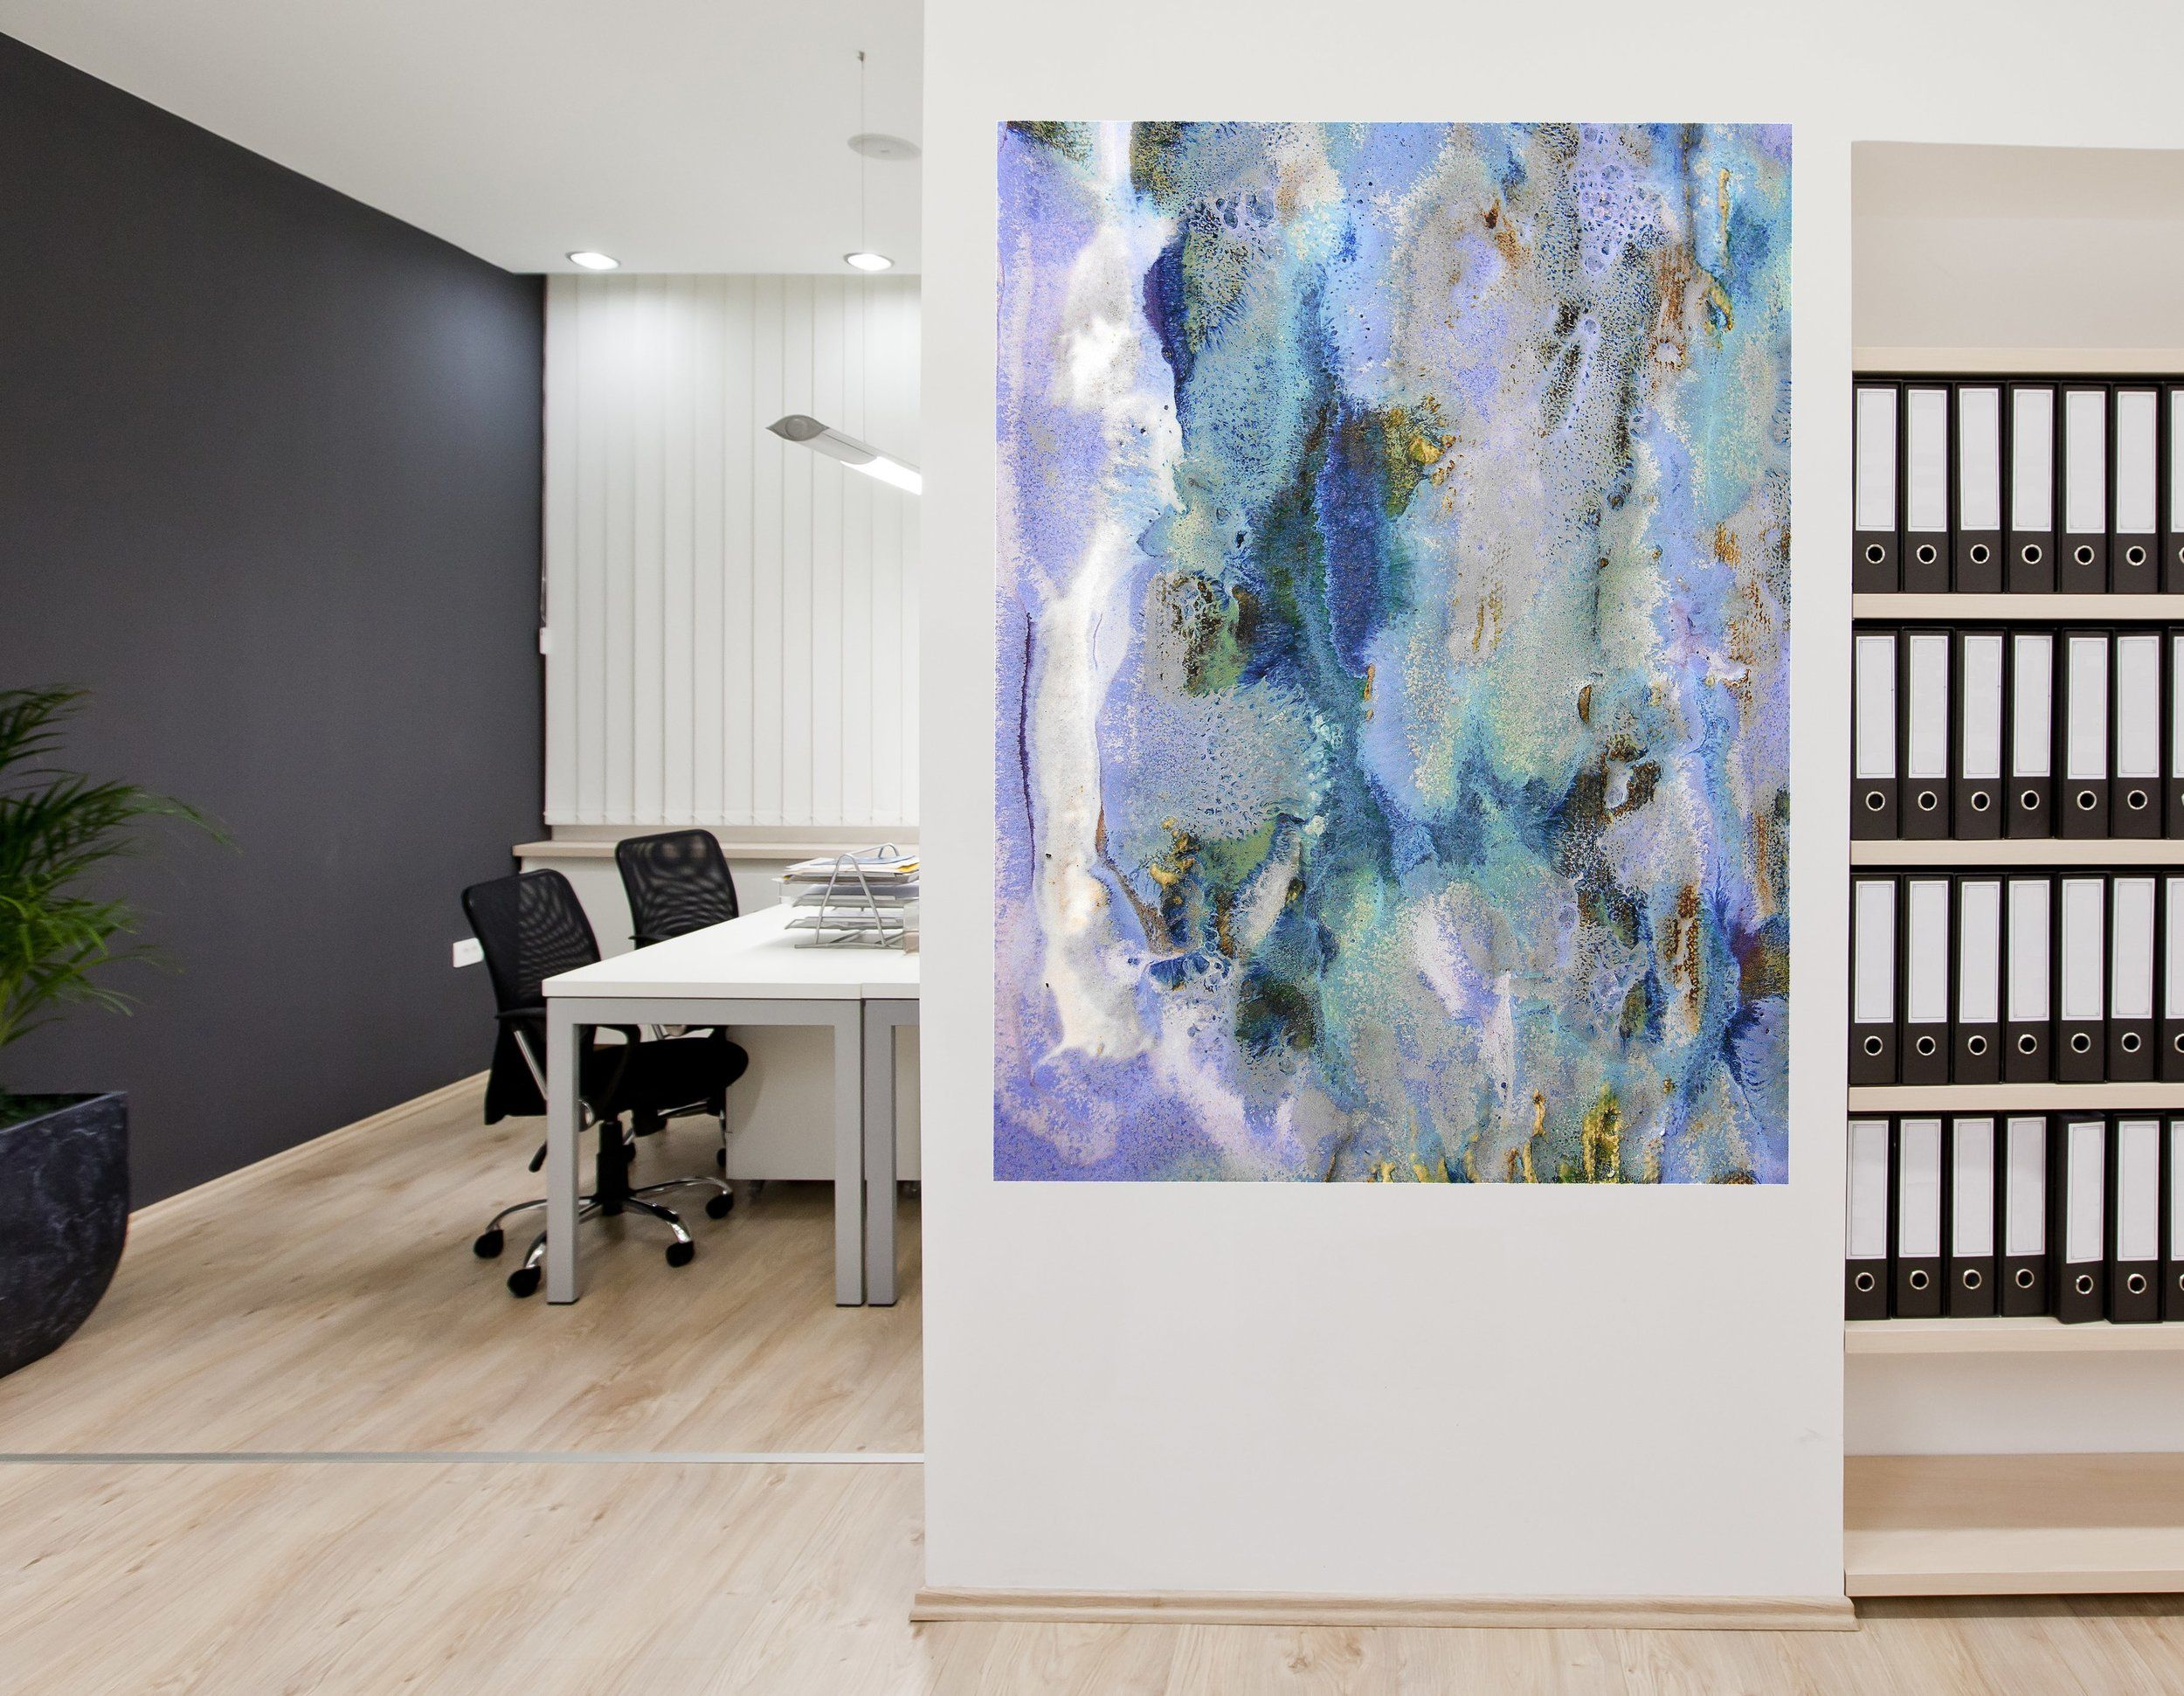 How to Make your fice Beautiful with Abstract Canvas Artwork